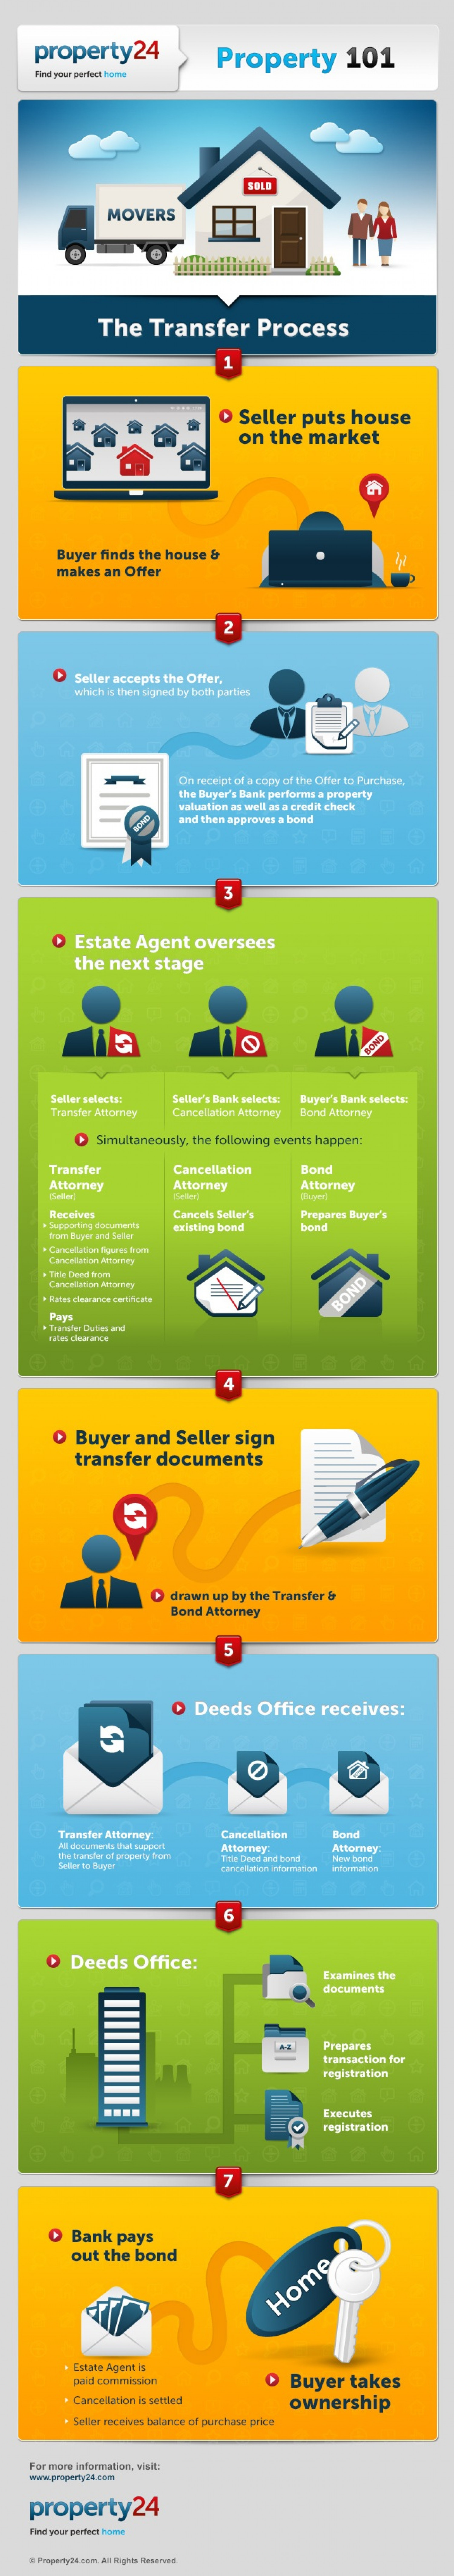 The Transfer Process Infographic